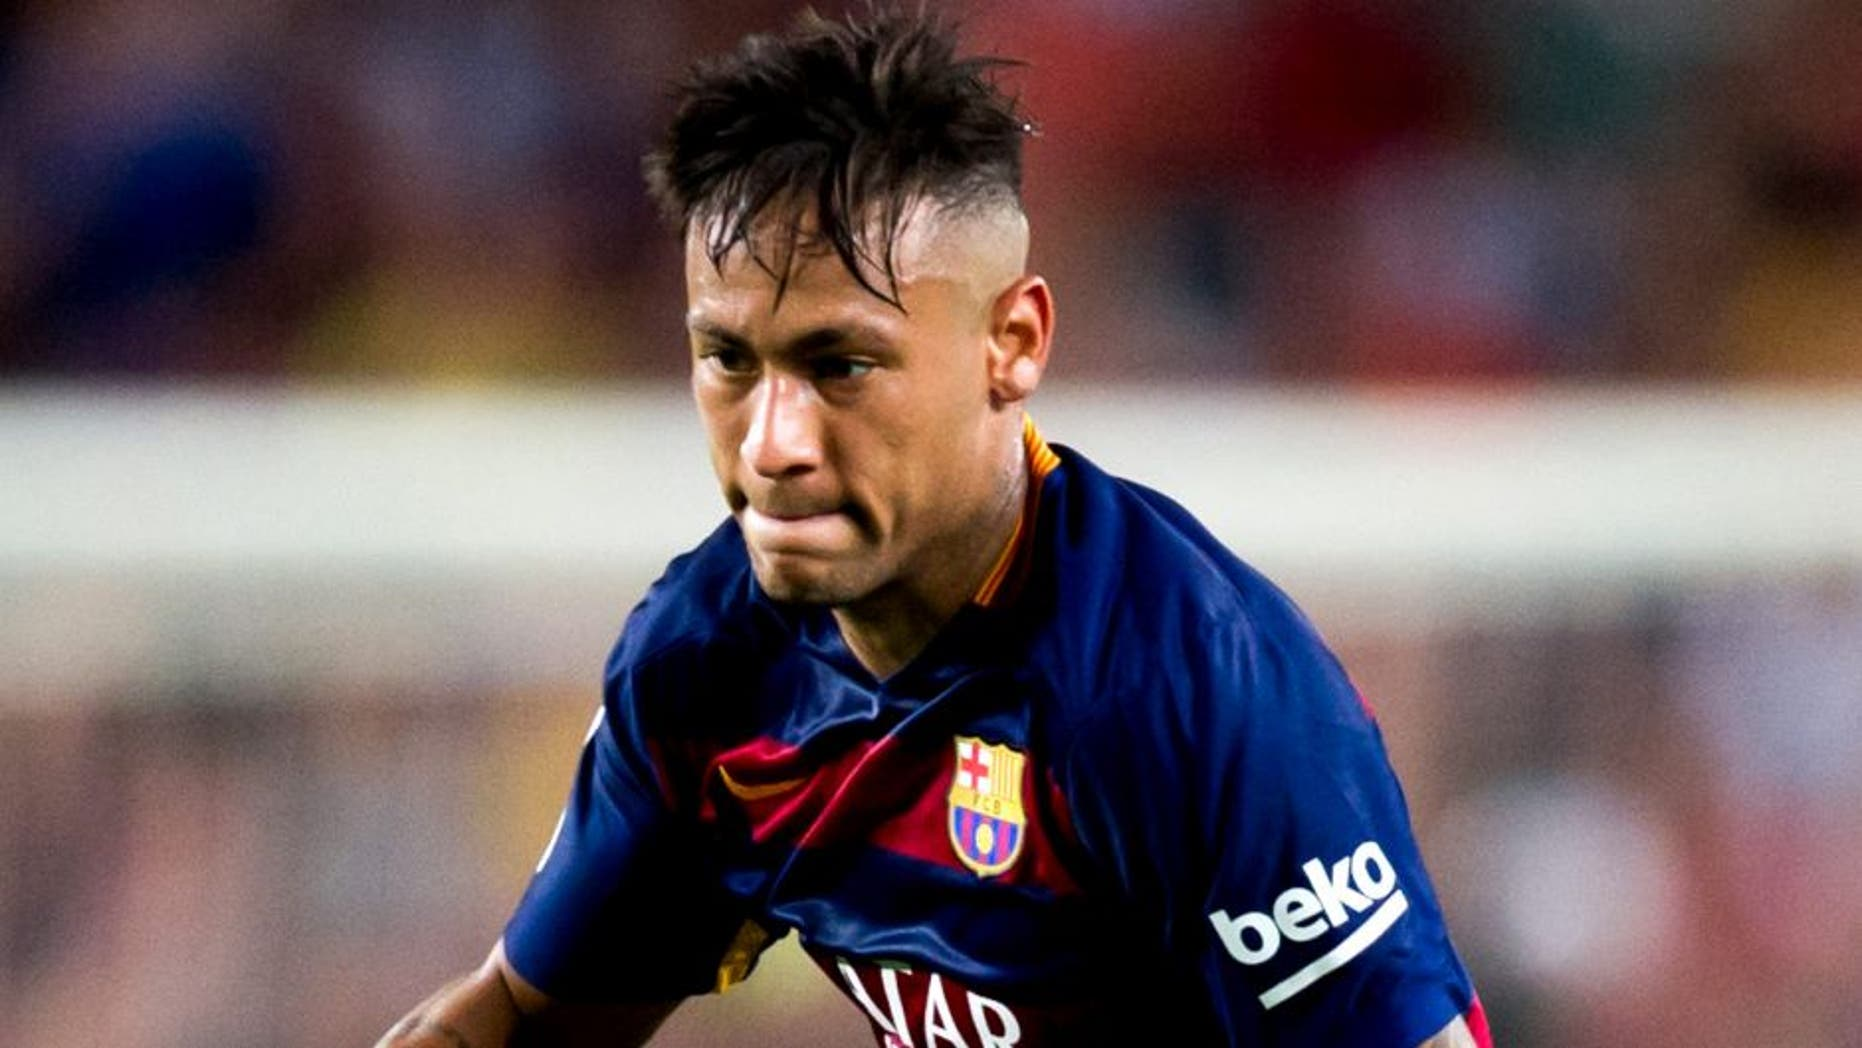 BARCELONA, SPAIN - AUGUST 29: Neymar Santos Jr of FC Barcelona runs with the ball during the La Liga match between FC Barcelona and Malaga CF at Camp Nou on August 29, 2015 in Barcelona, Spain. (Photo by Alex Caparros/Getty Images)